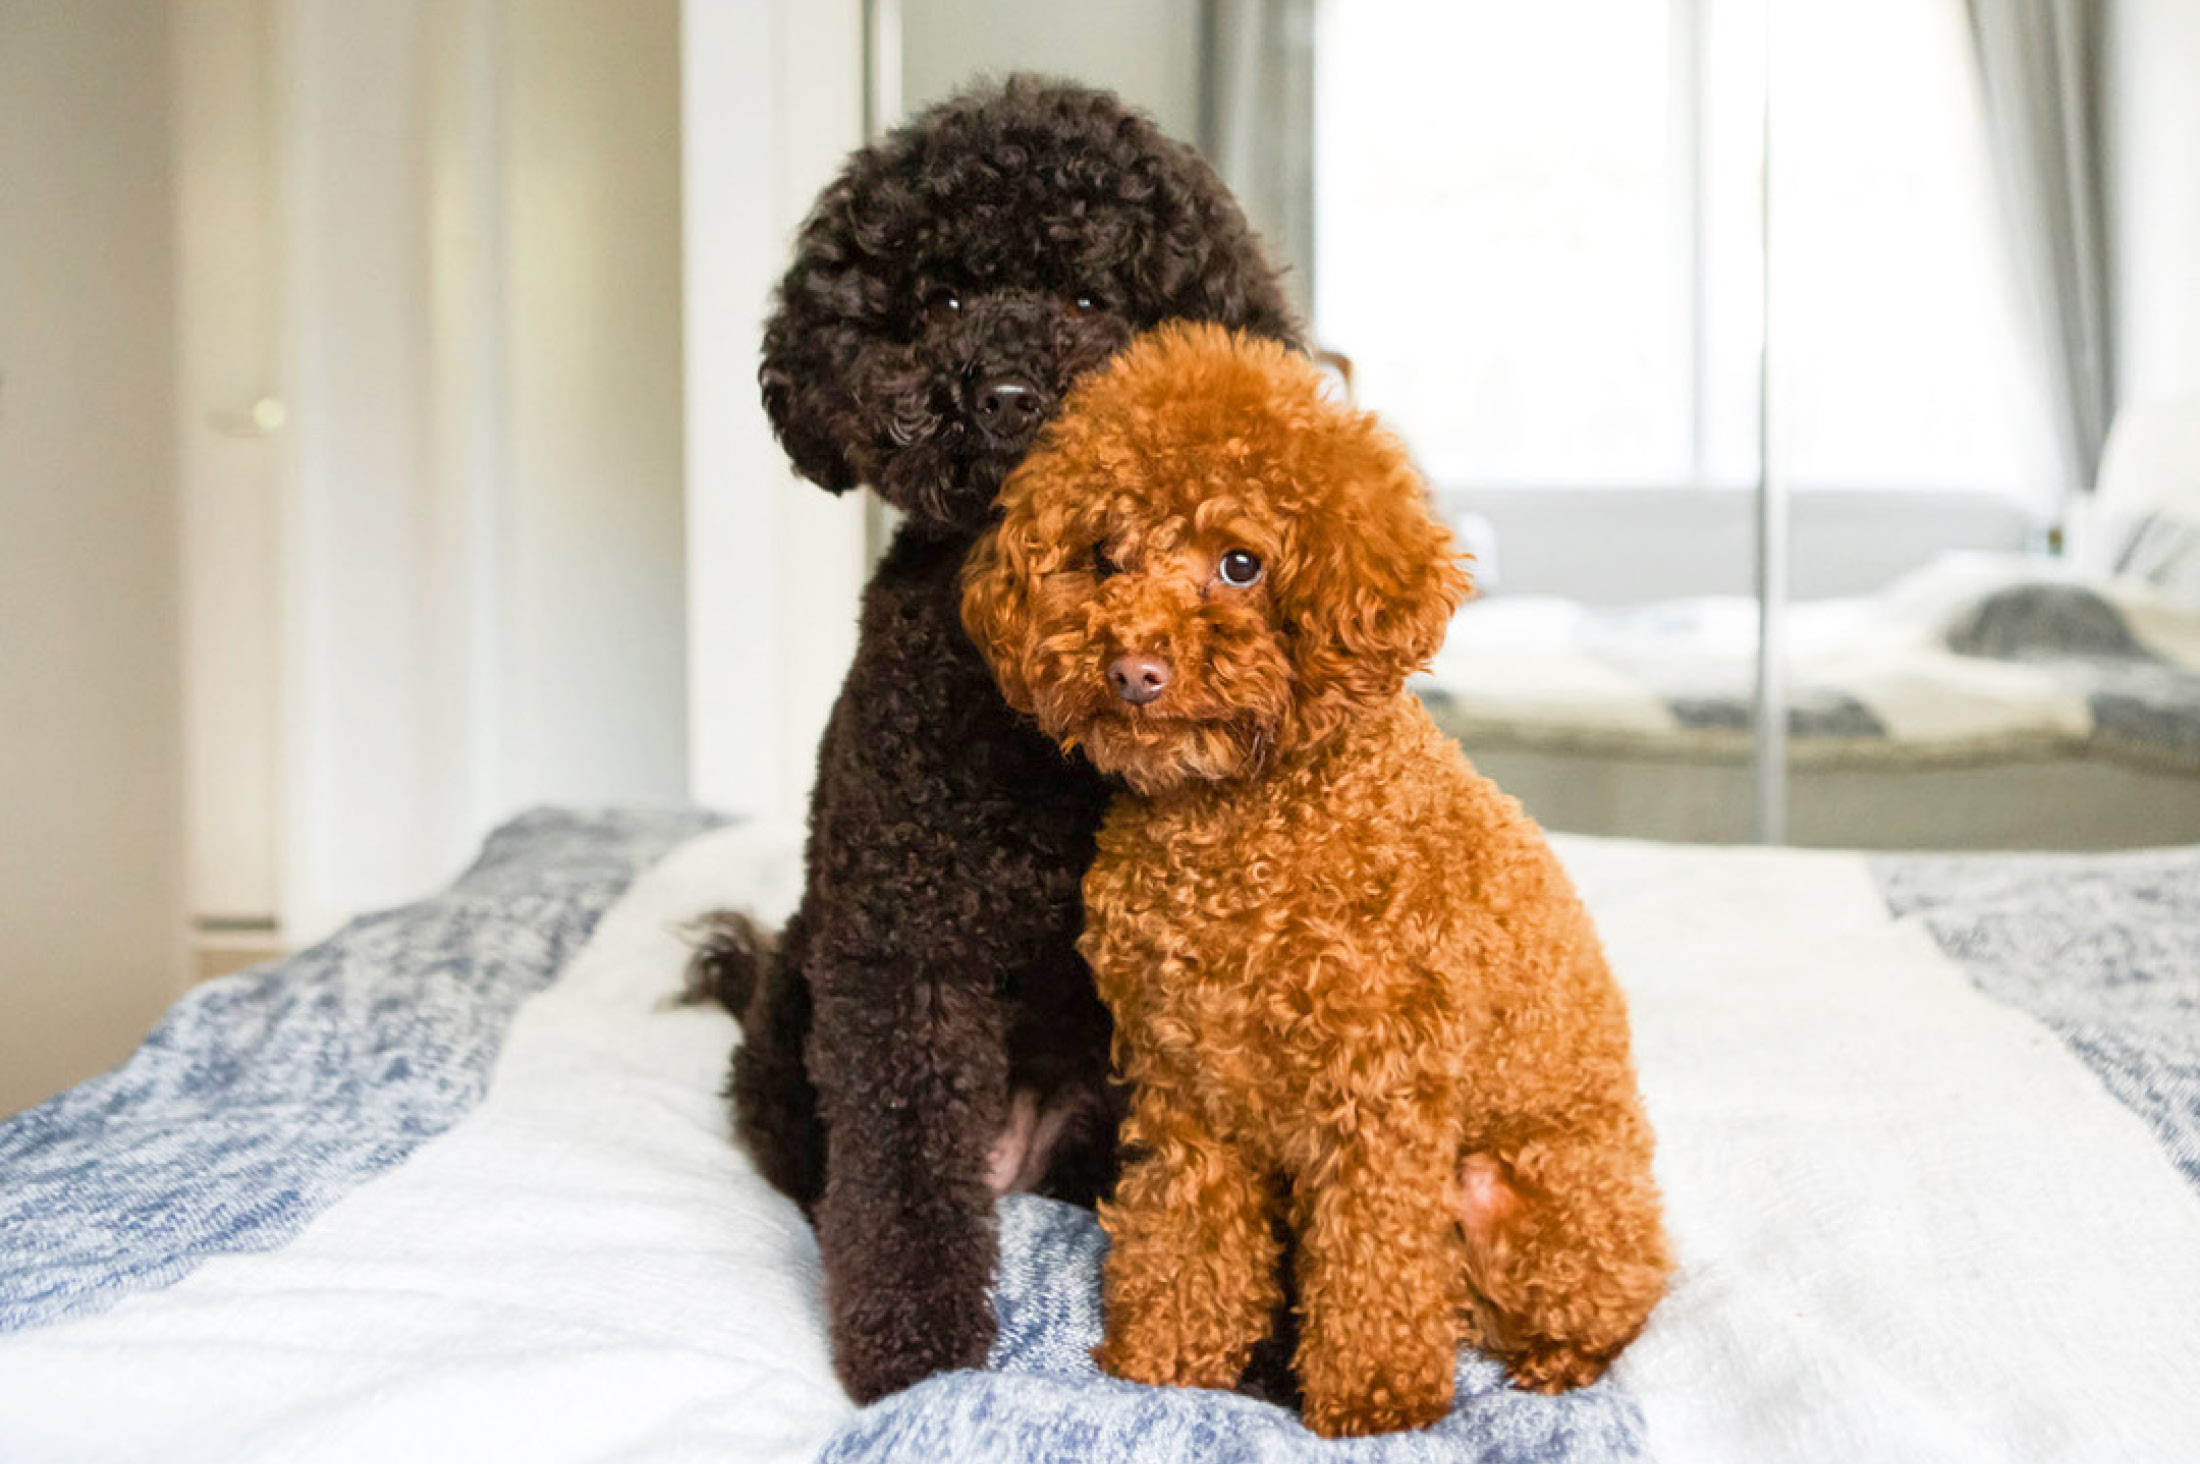 Black and brown toy poodle on bed - 6 Simple pet photography tips